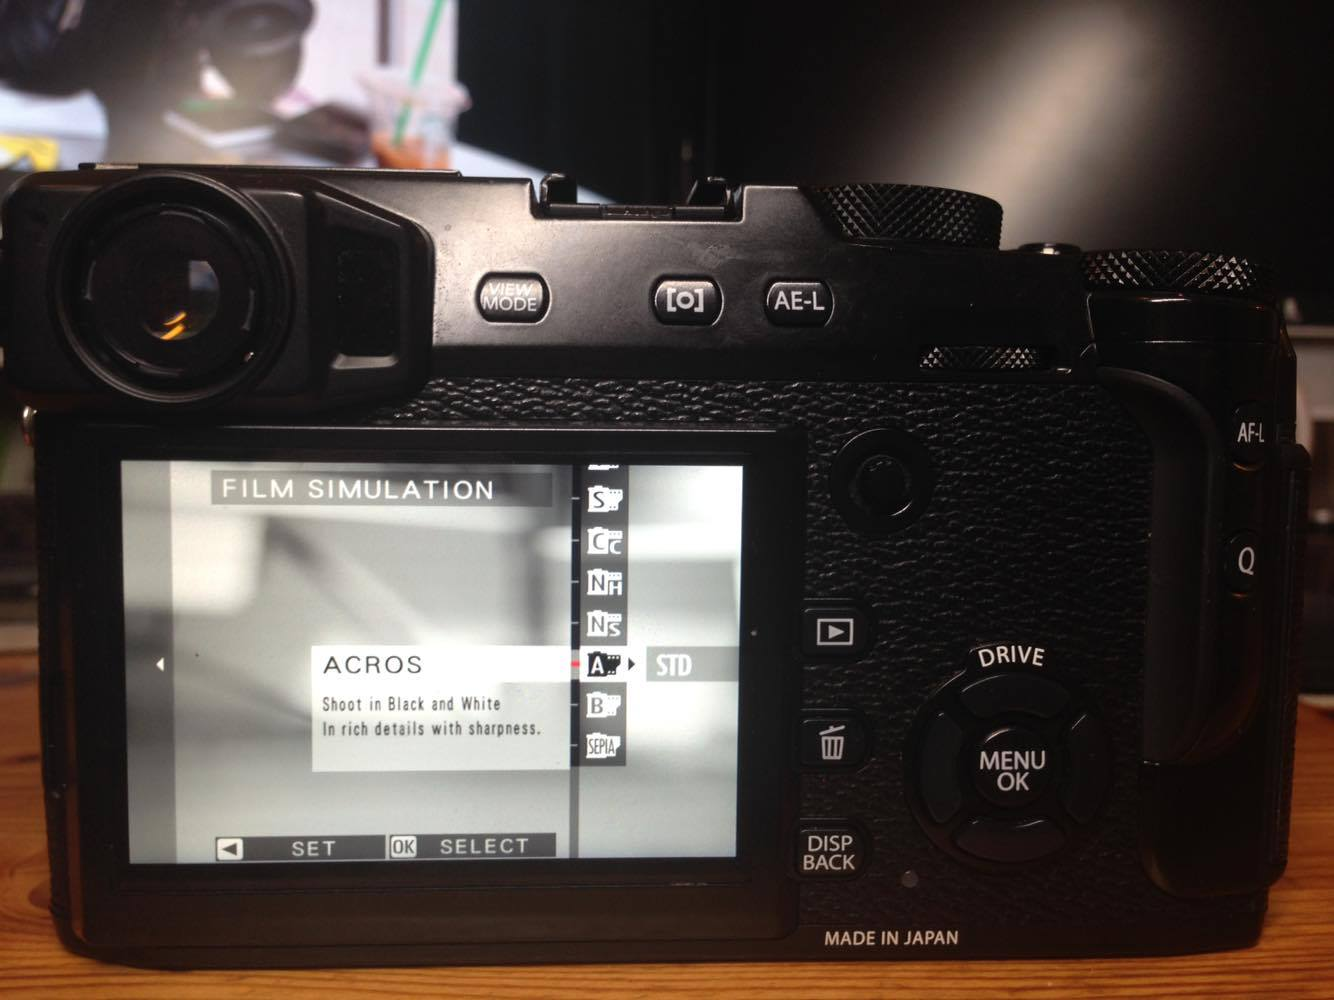 The Extensive Pro-Shooter's Review of the Fuji X-Pro2